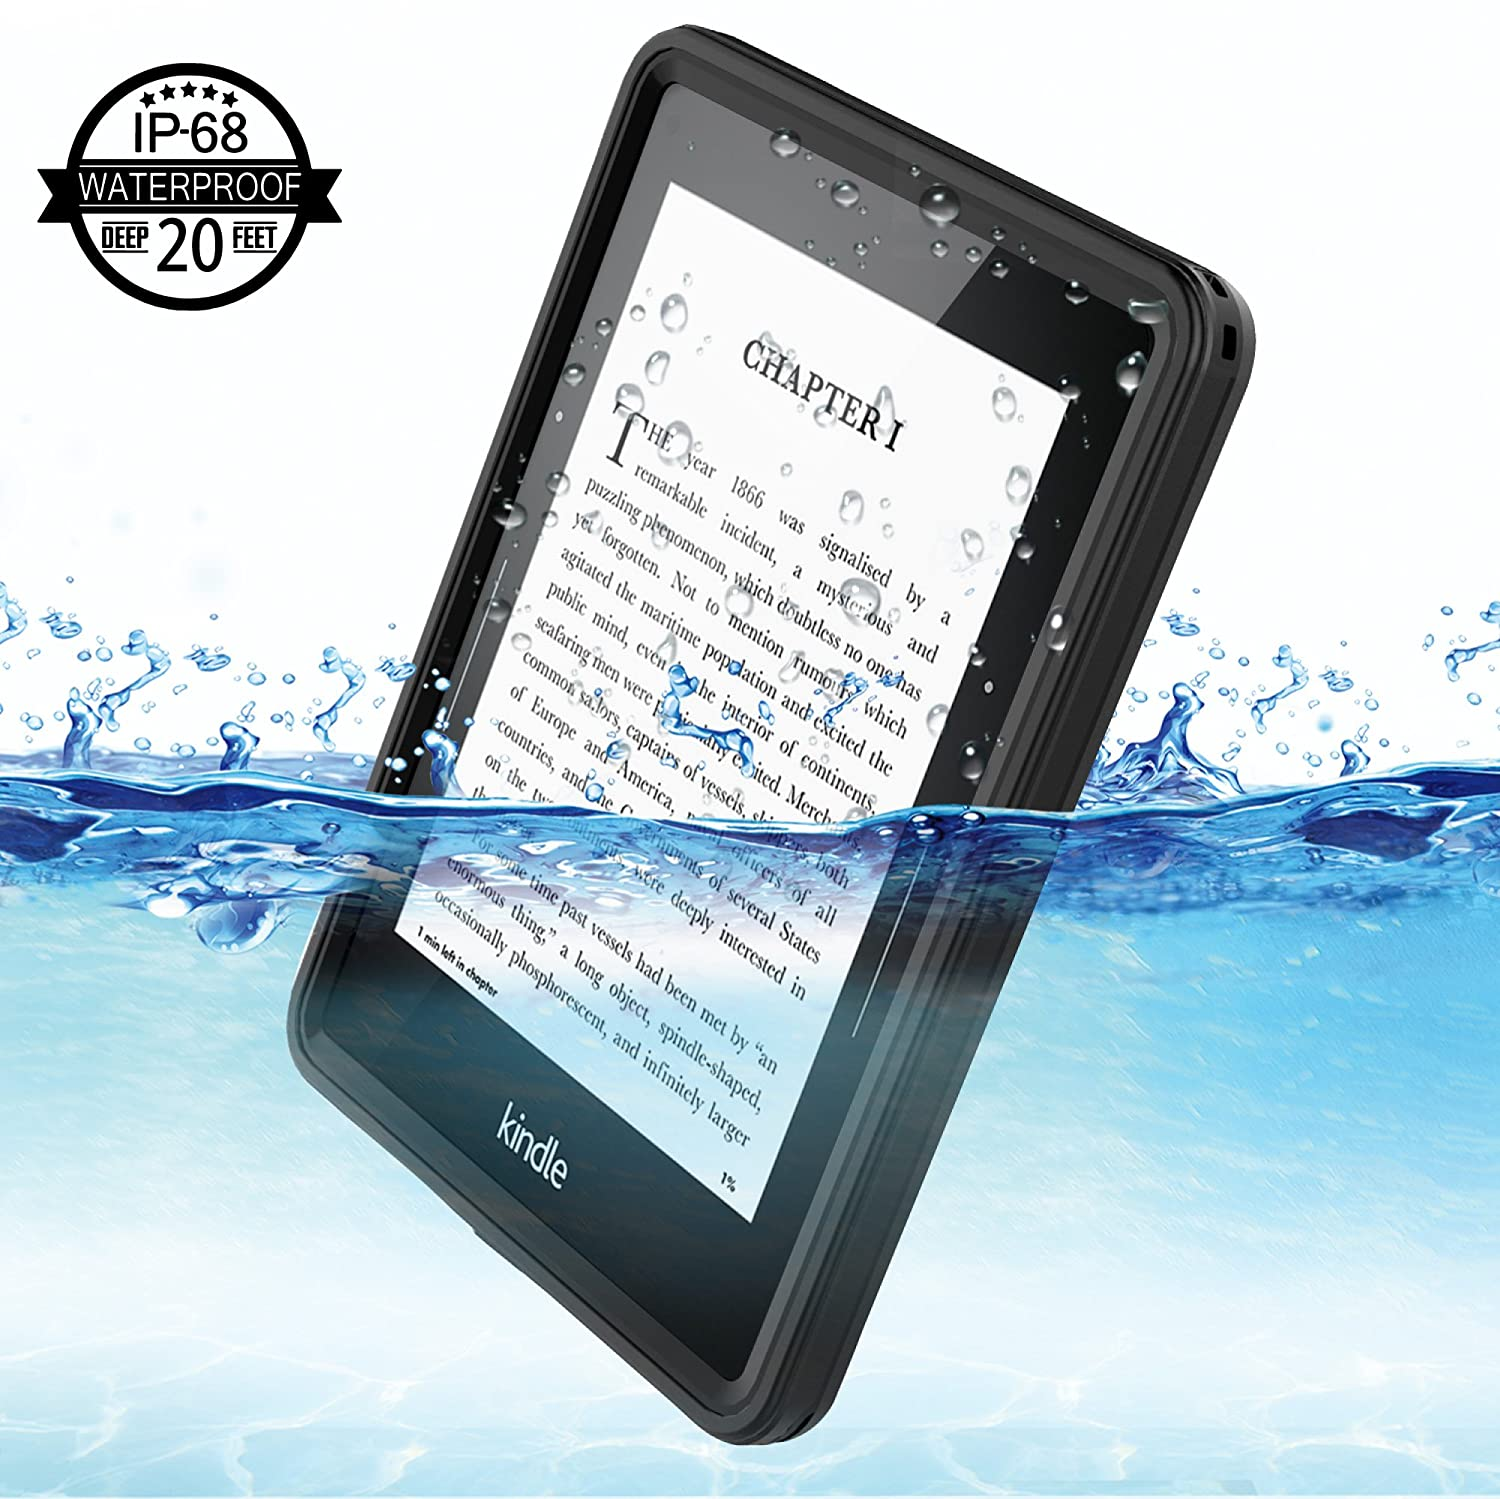 Kindle Voyage Waterproof Case  Temdan【Heavy Duty】 Rugged Built in Screen  Protector Sleek Transparent Case Shockproof Waterproof Case for Kindle